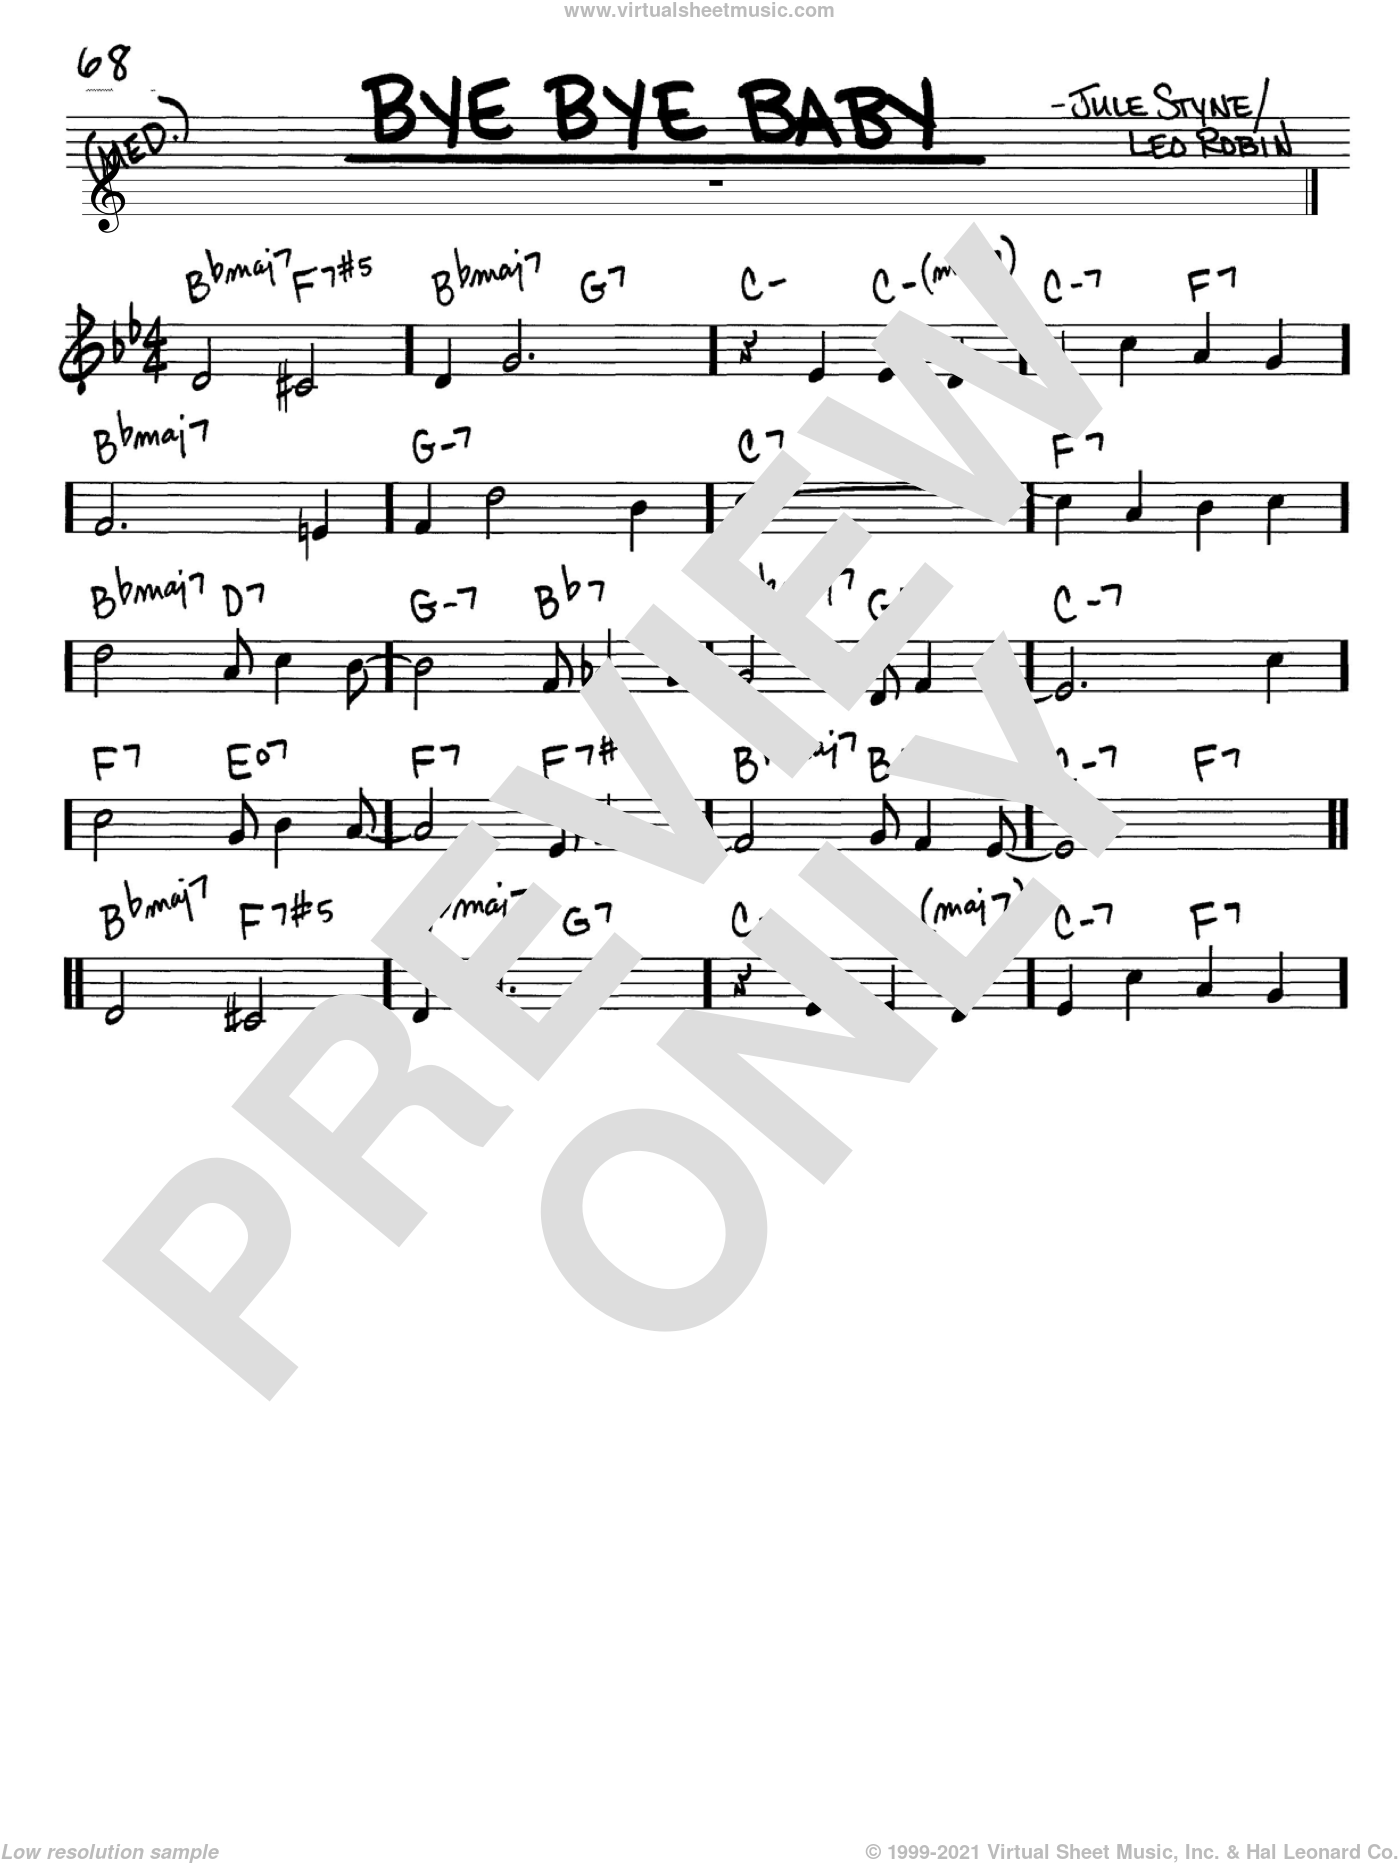 Bye Bye Baby sheet music for voice and other instruments (in C) by Marilyn Monroe, Jule Styne and Leo Robin, intermediate skill level